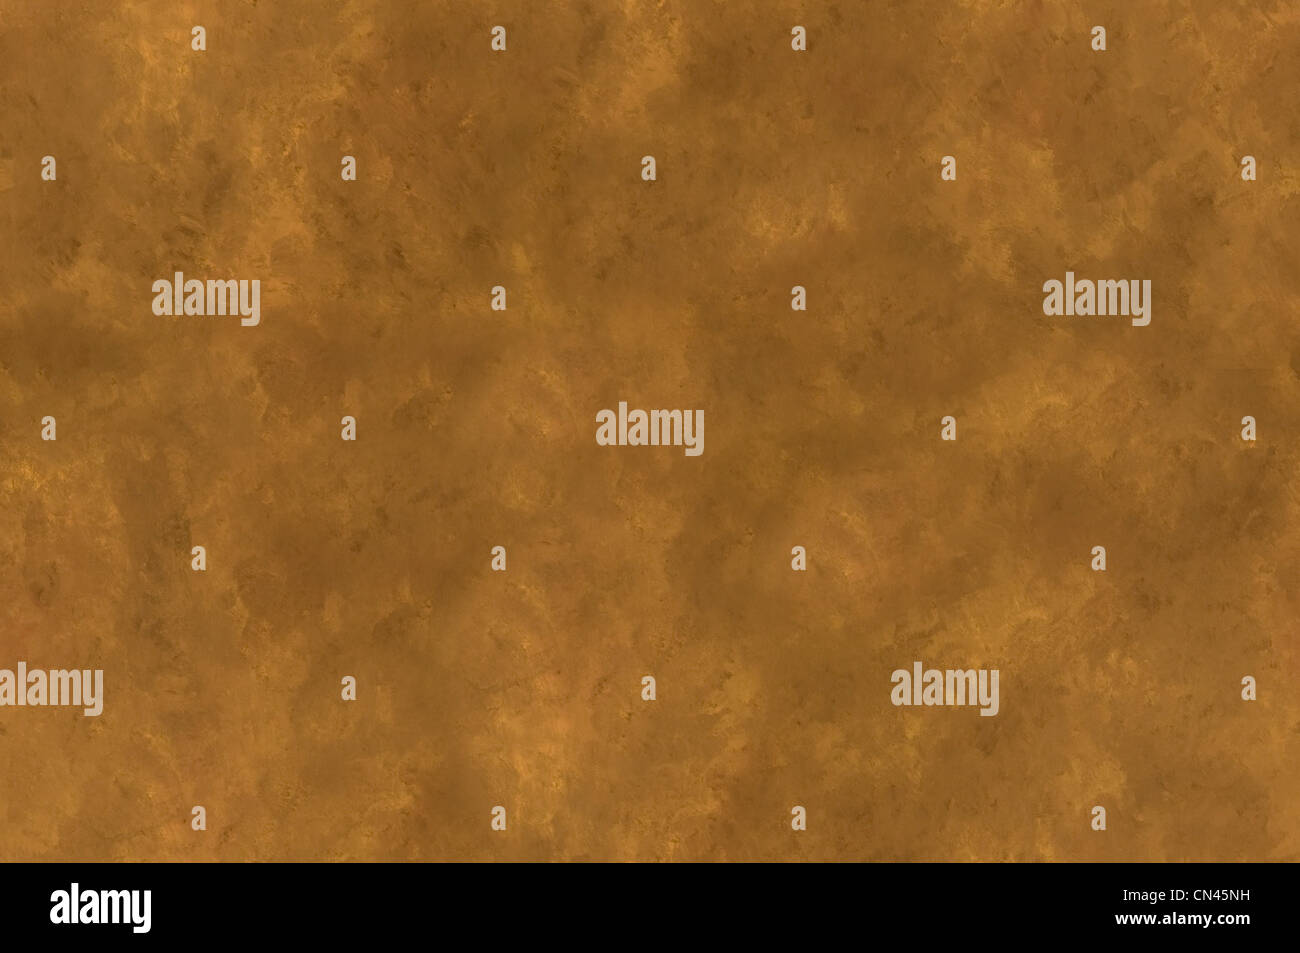 Brown mottled canvas background seamlessly tileable - Stock Image